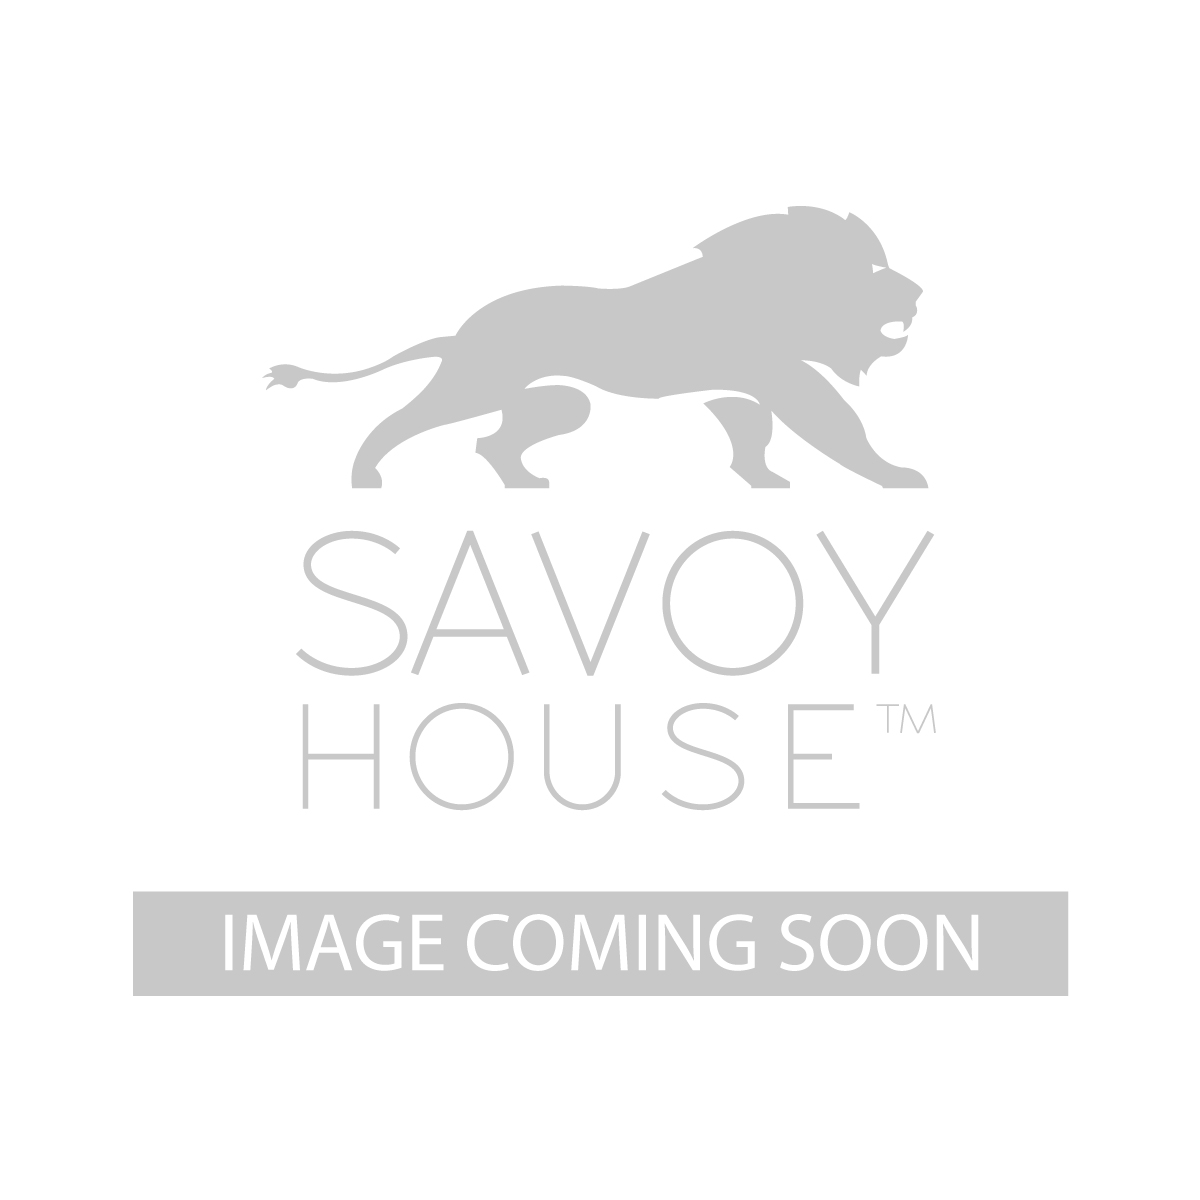 5 60323 186 Castlemain Wall Mount Lantern By Savoy House